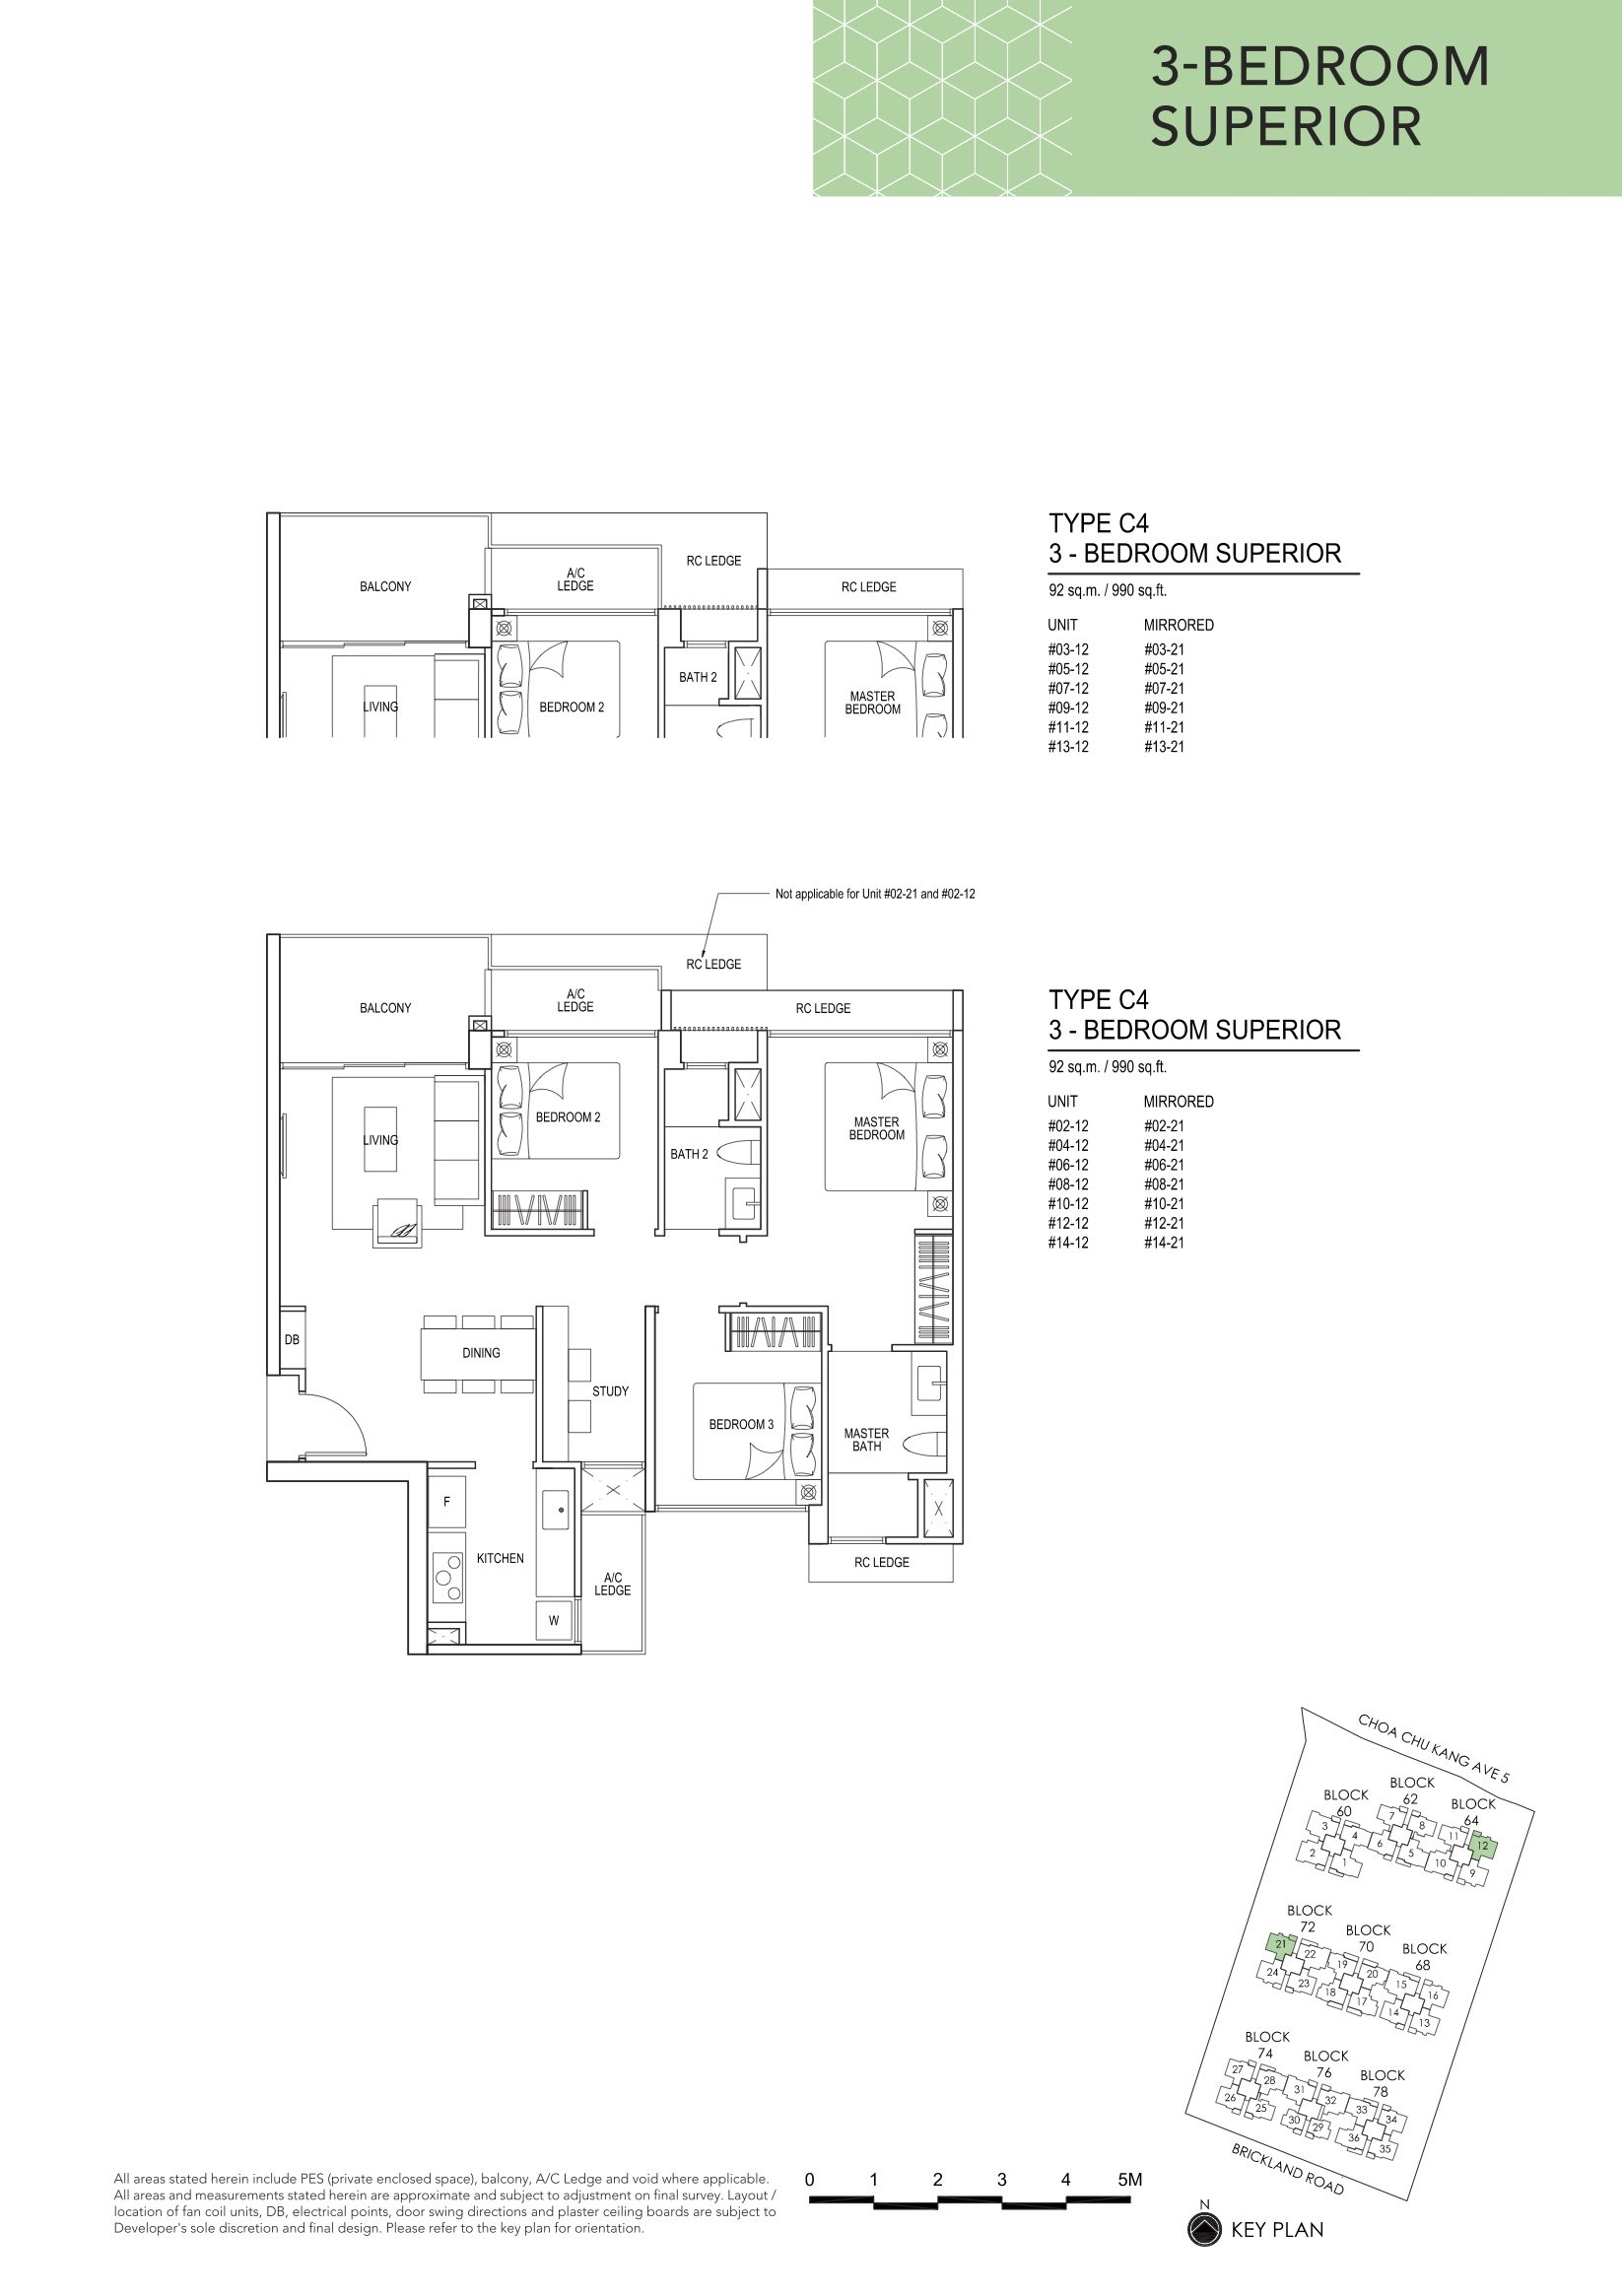 Read INz Residence EC Floor Plans Its Flexible And Functional Unit Layouts